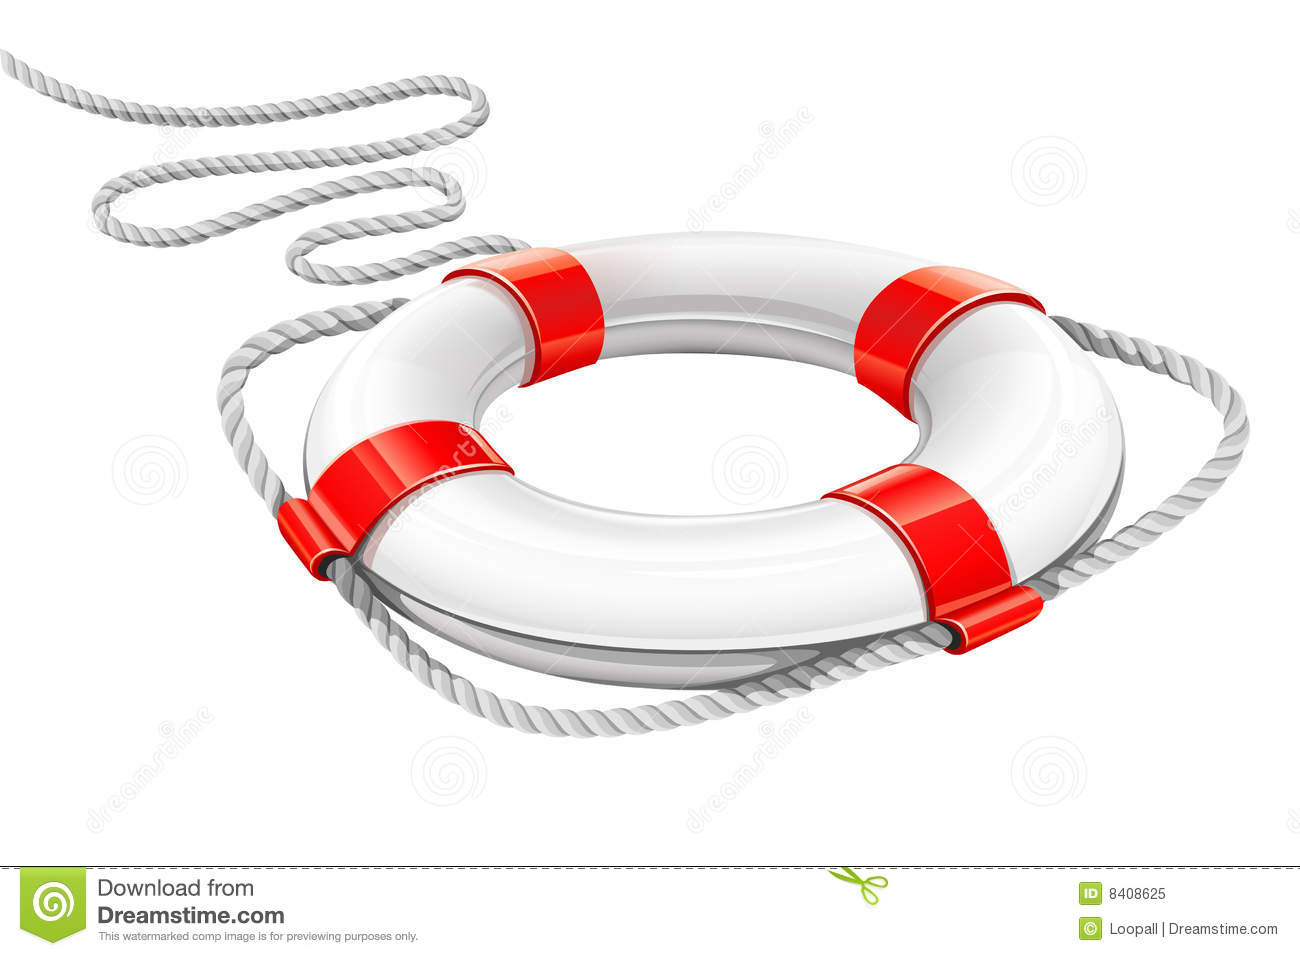 Rescue Circle For Help In Water Royalty Free Stock Photo - Image ...